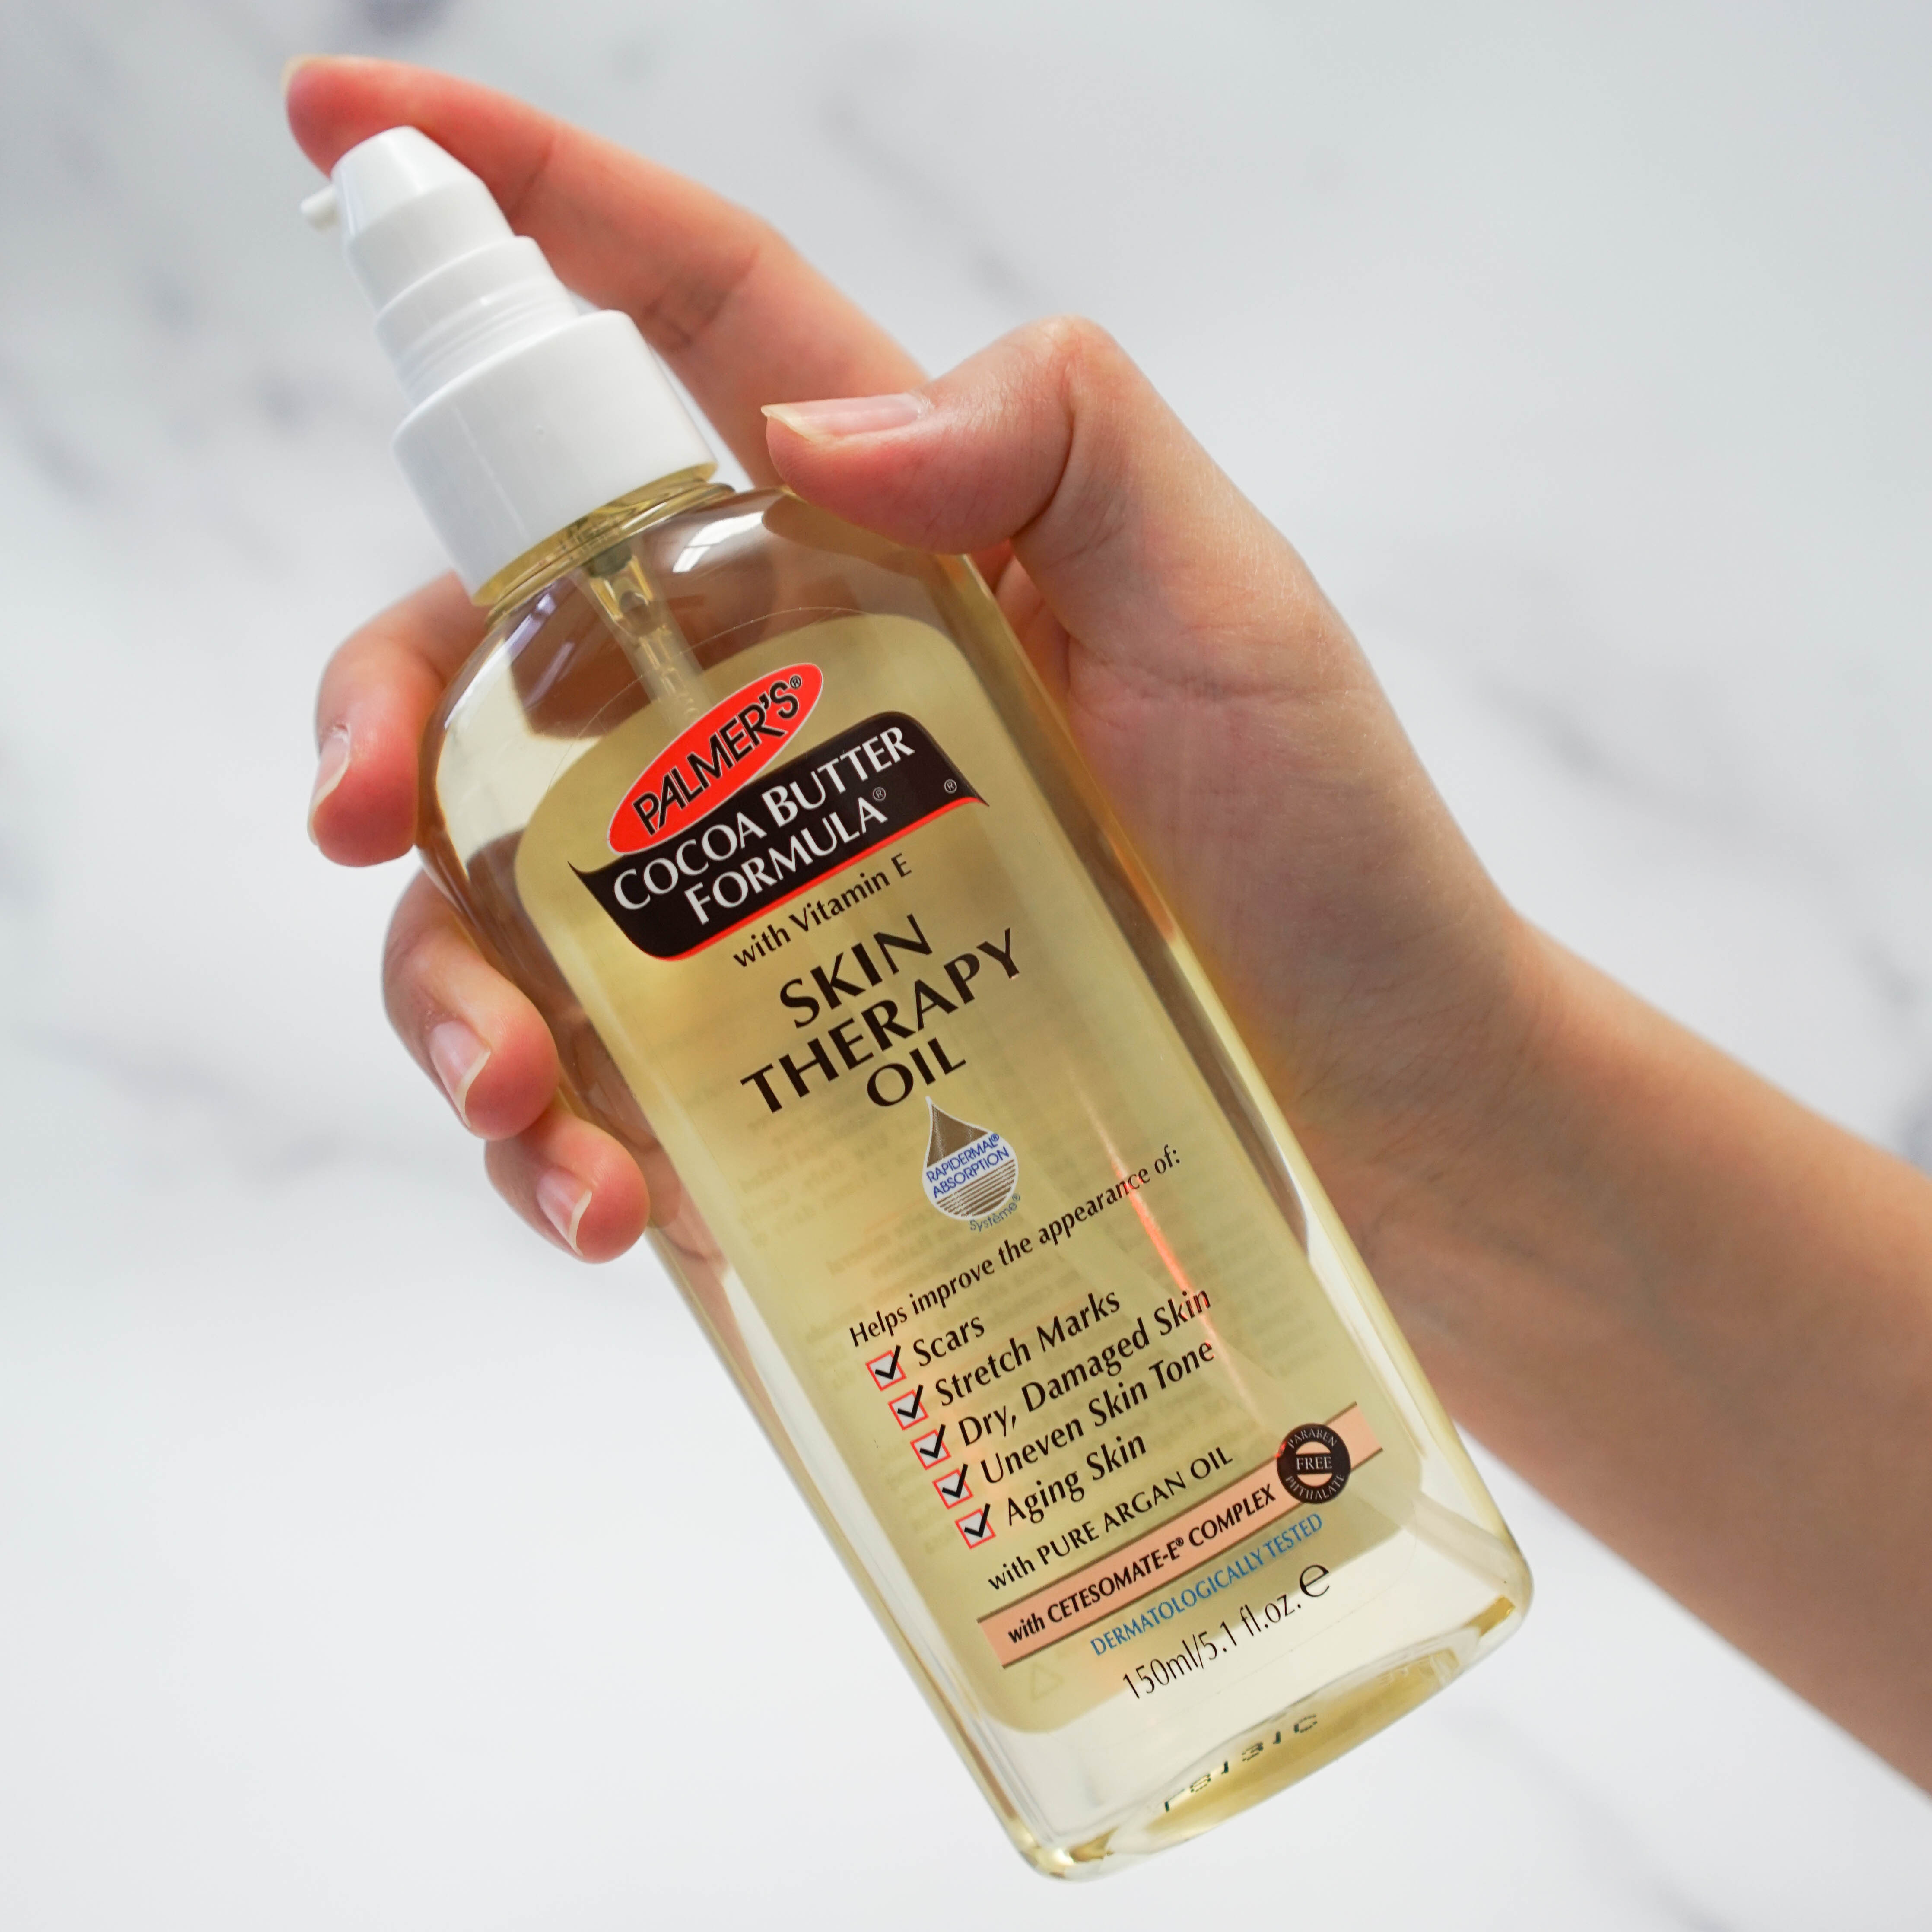 Palmer's Cocoa Butter Formula Skin Therapy Oil in hand